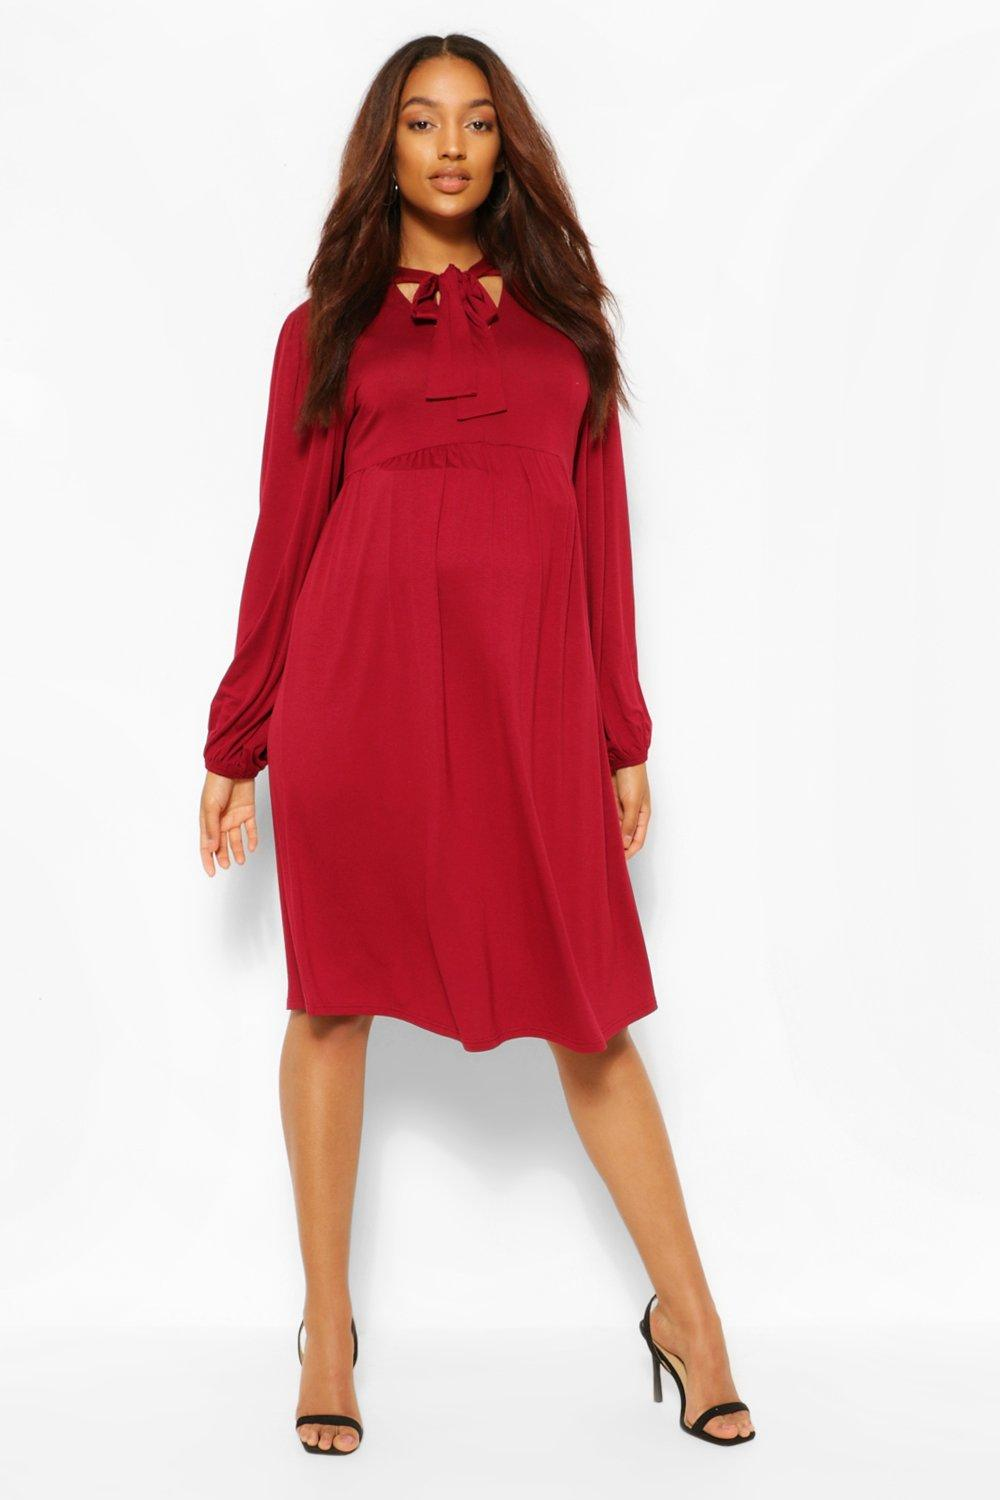 Vintage Maternity Dresses and Clothes Womens Maternity Tie Neck Drape Sleeve Smock Dress - Red - 12 $12.00 AT vintagedancer.com